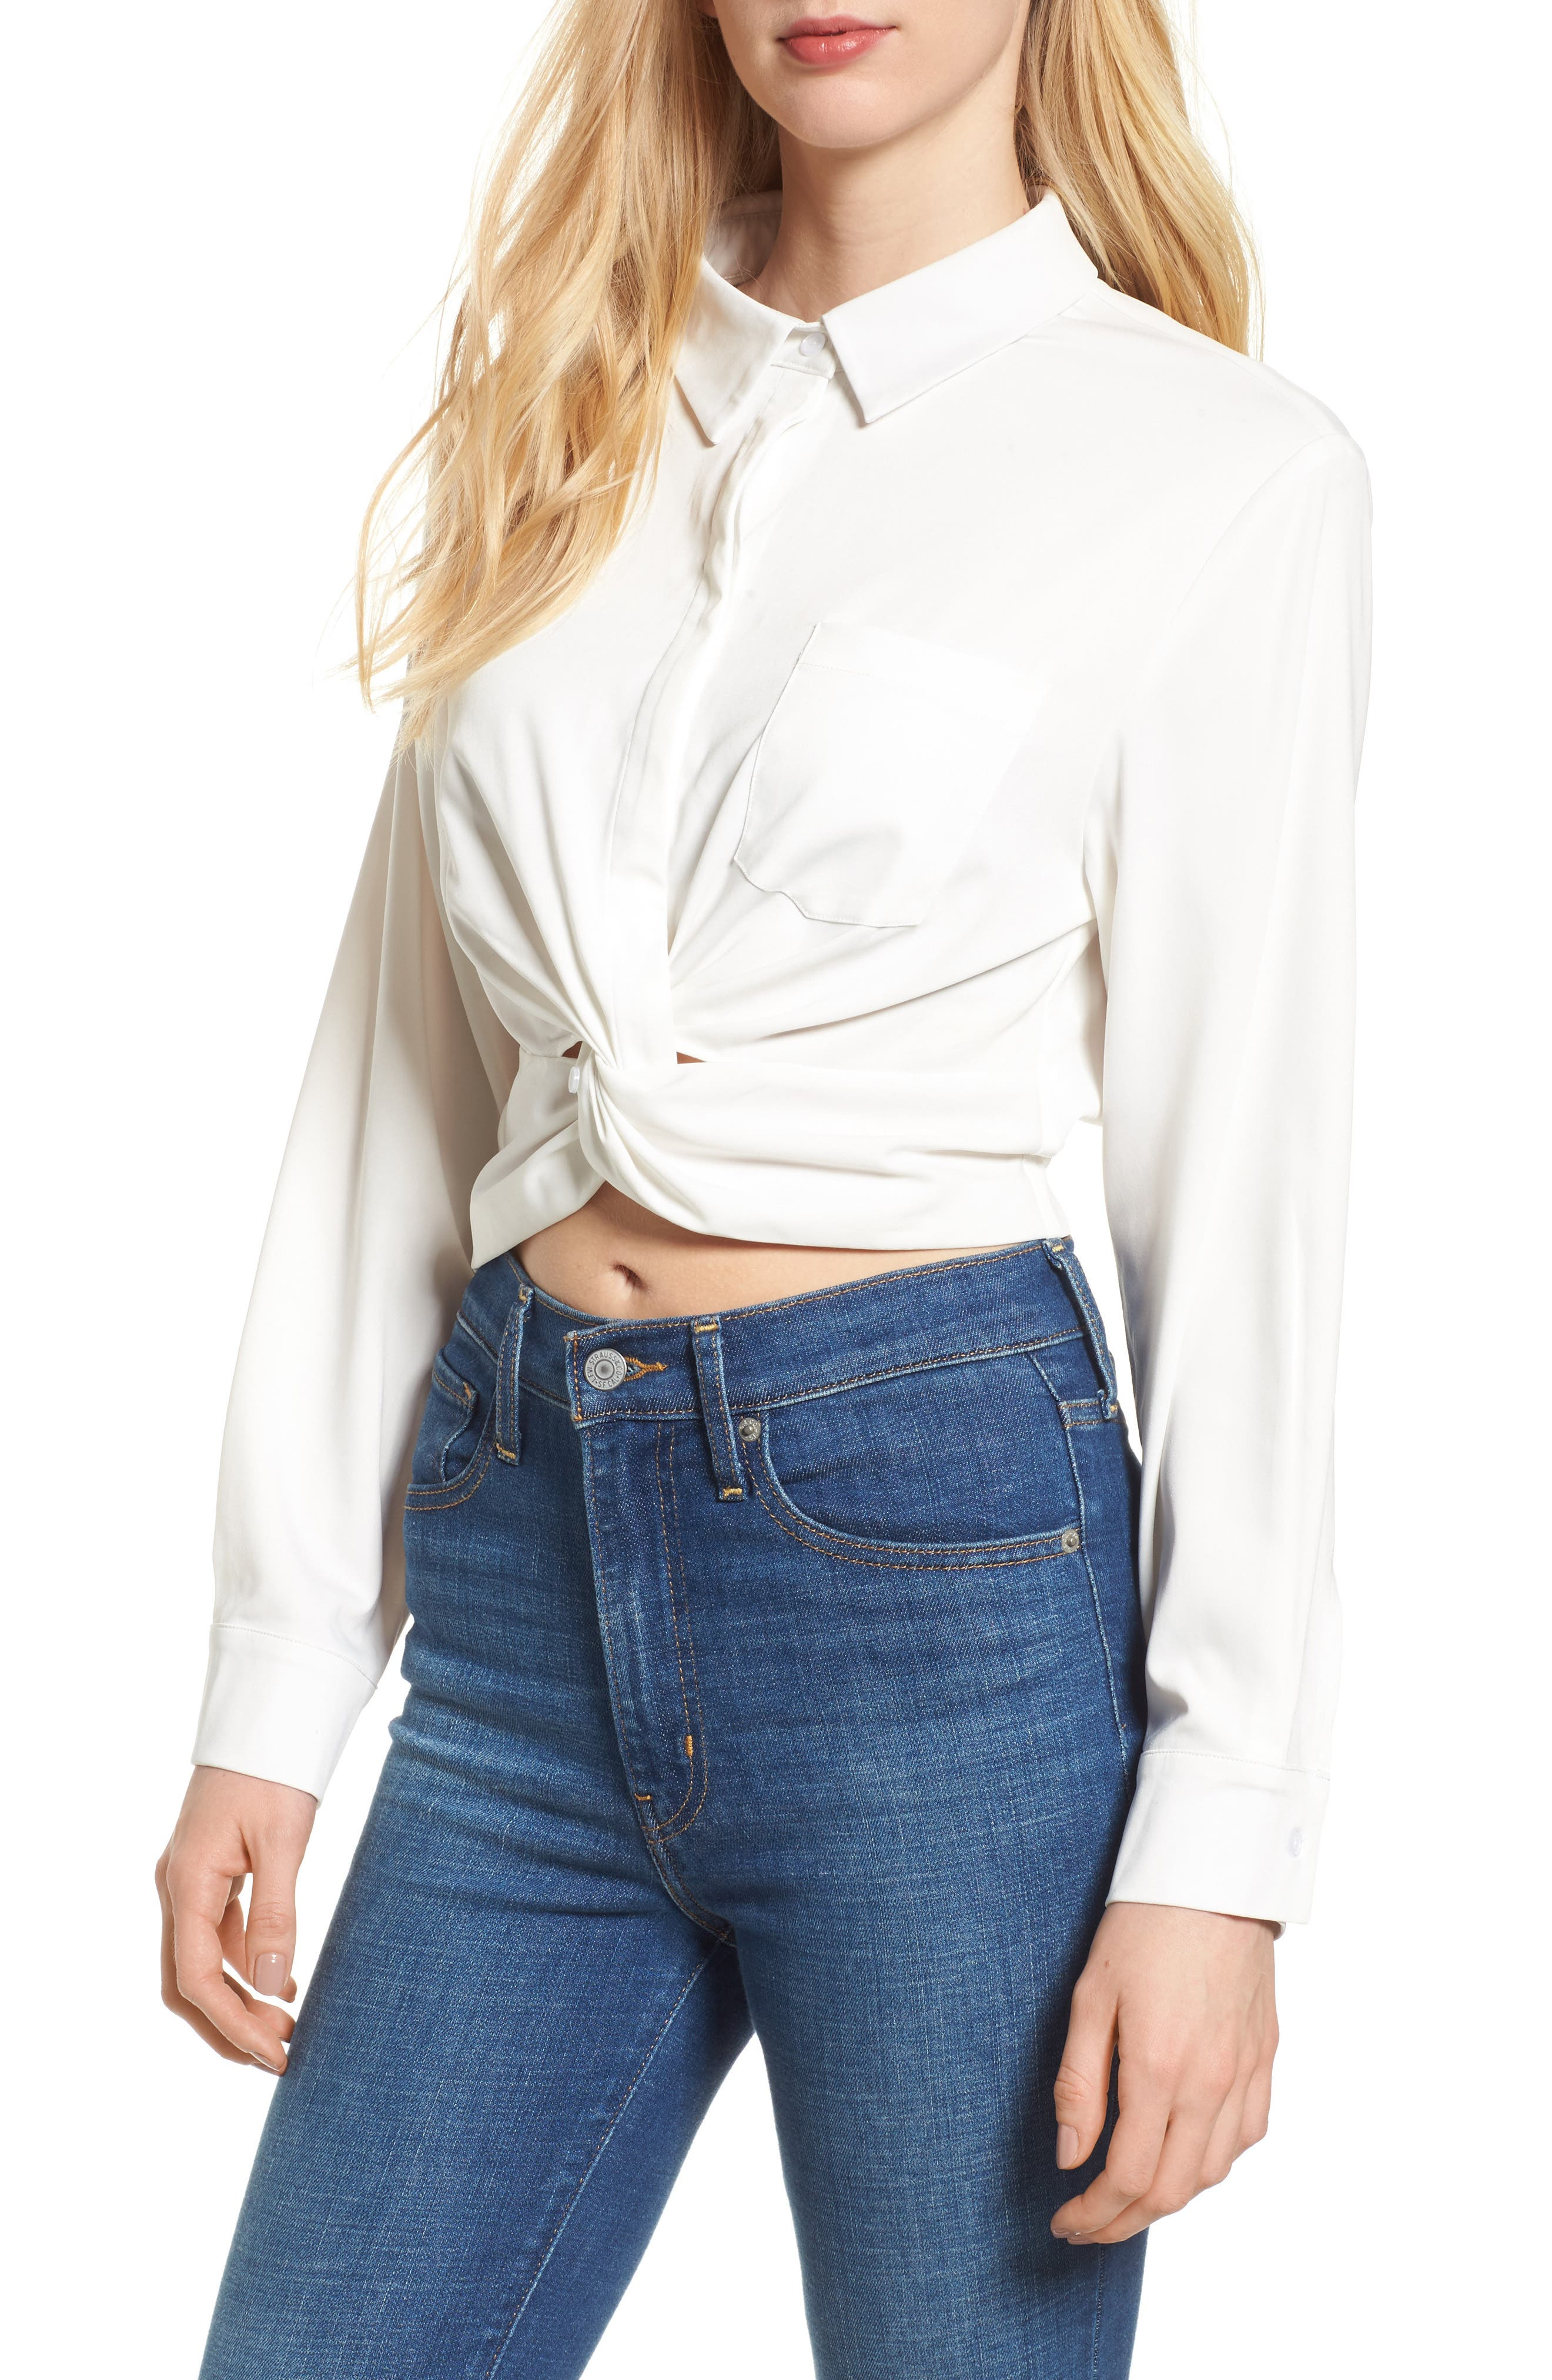 Bishop + Young Alexandra Twist Blouse,                         Main,                         color, White